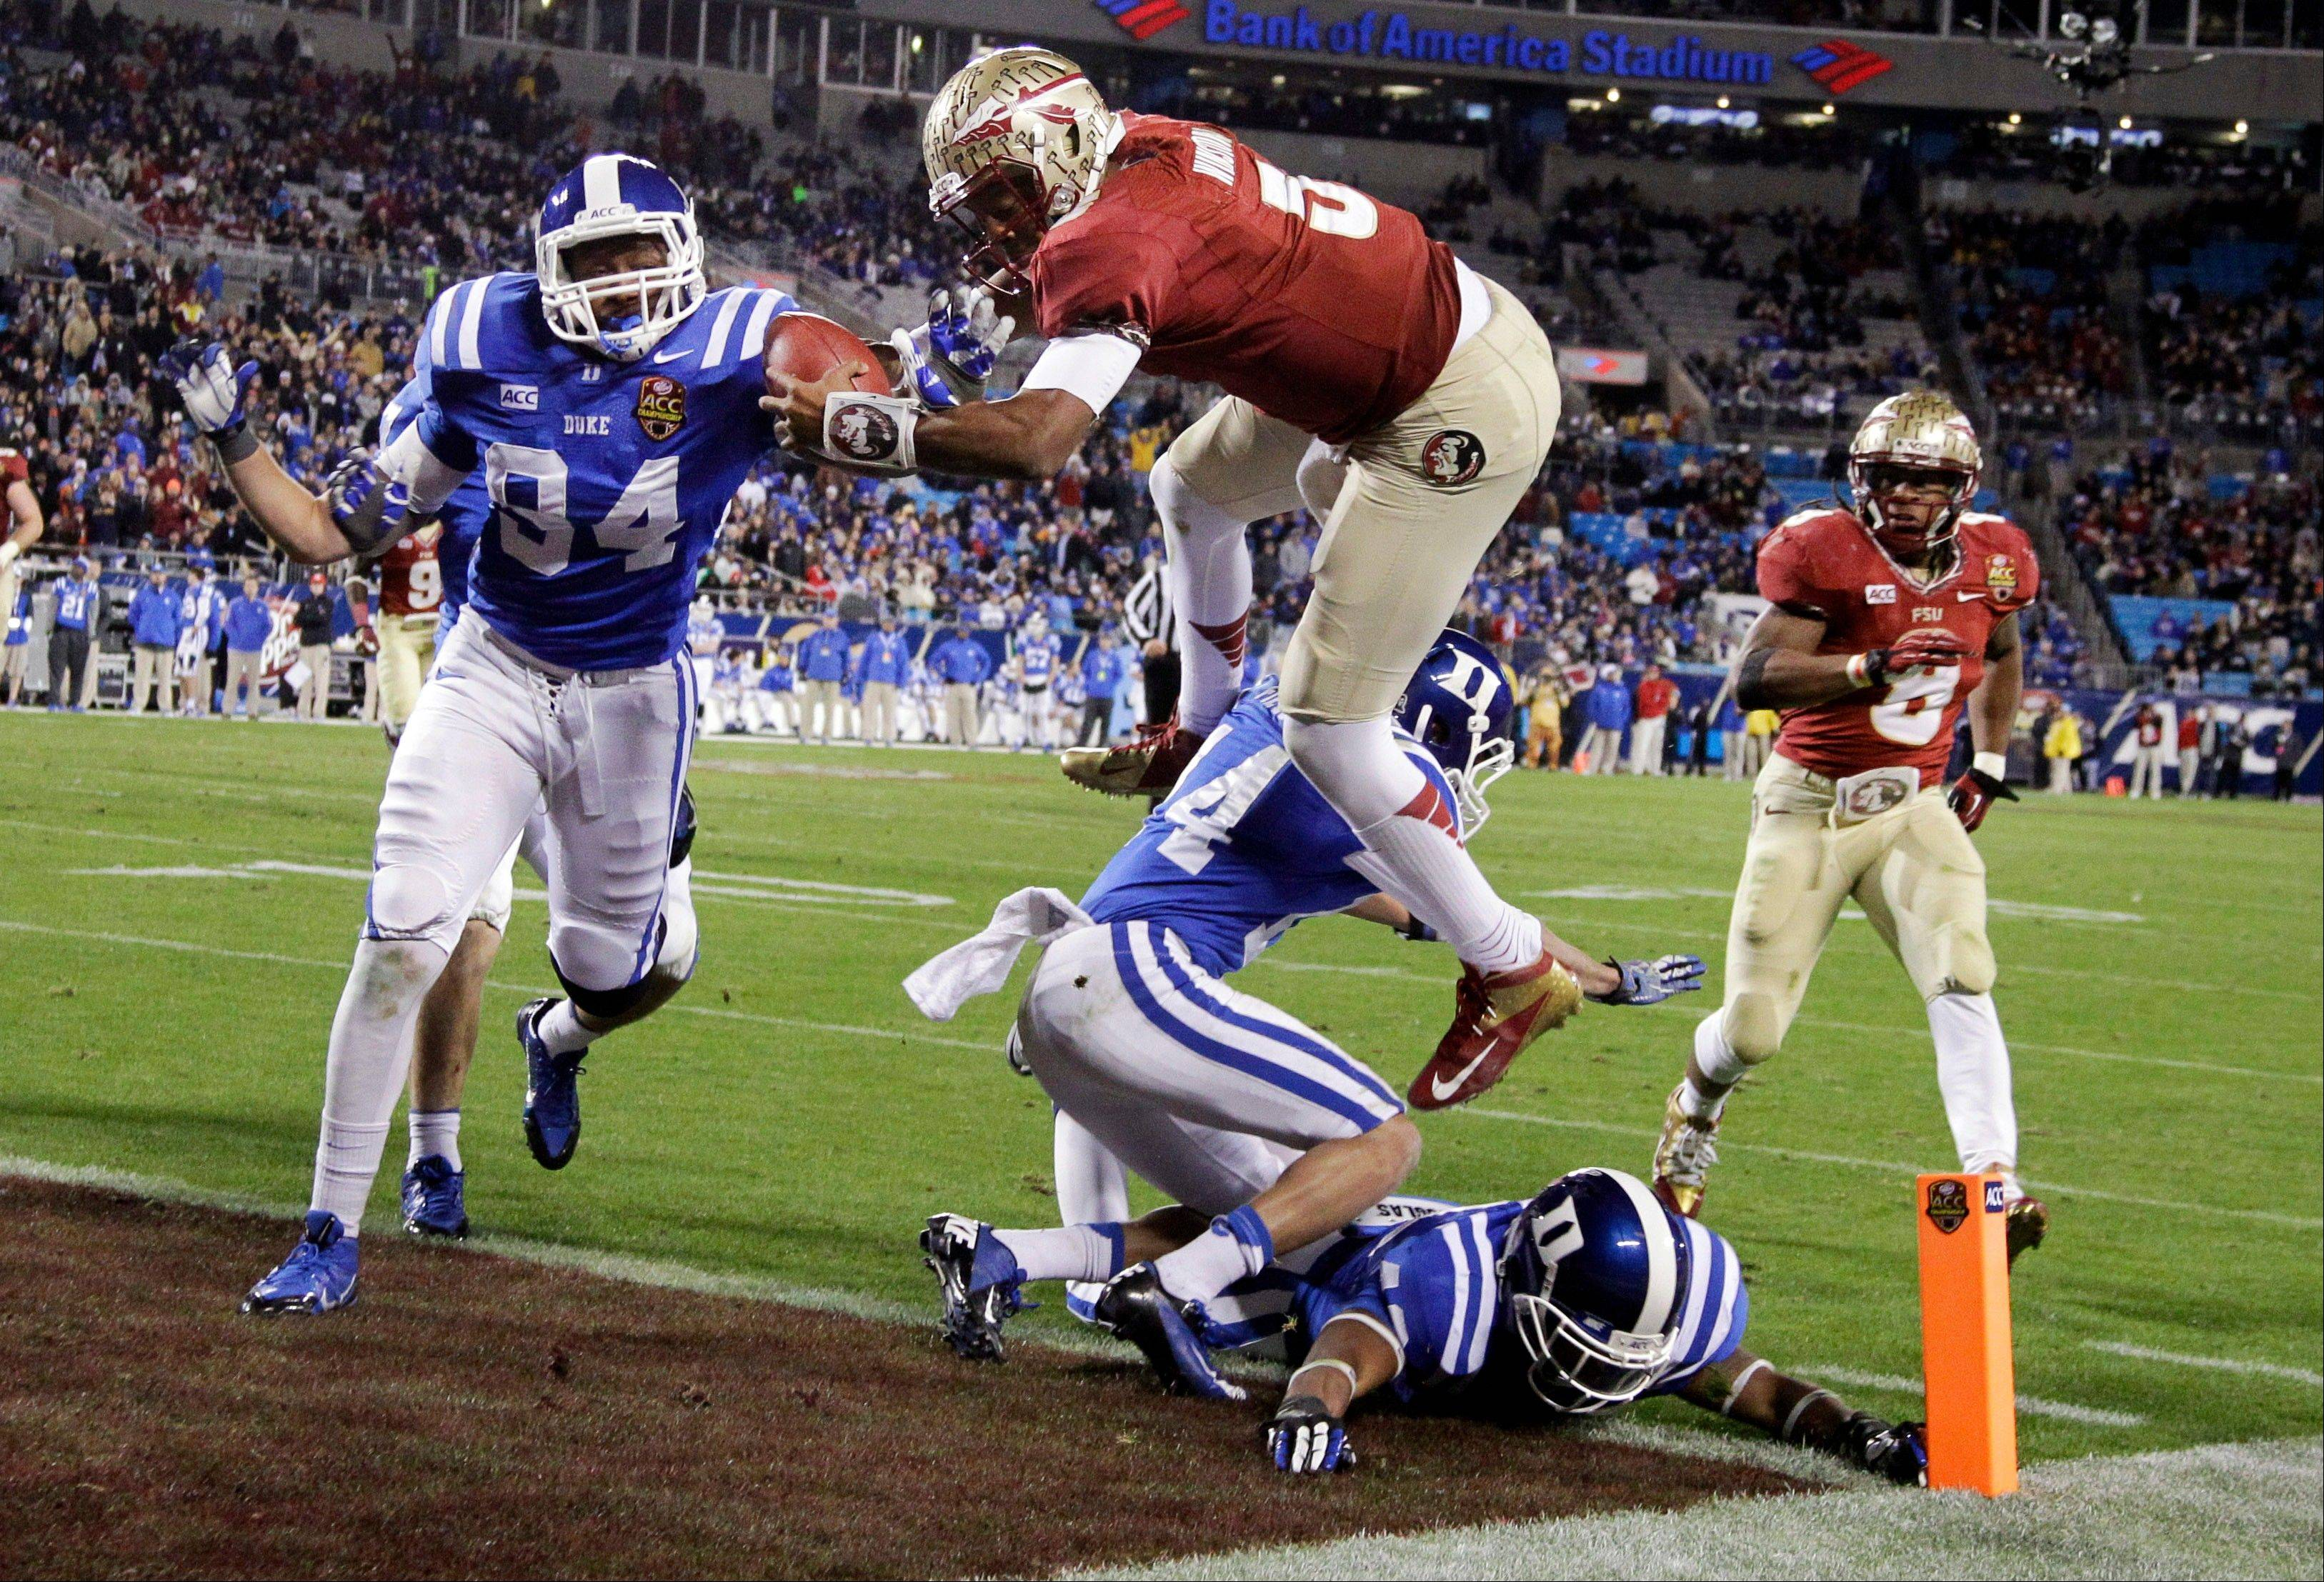 In this Dec. 7 file photo, Florida State's Jameis Winston (5) leaps over Duke's Bryon Fields (14) for a touchdown in the second half of the Atlantic Coast Conference Championship NCAA football game in Charlotte, N.C. The Associated Press on Tuesday named Winston its player of the year.